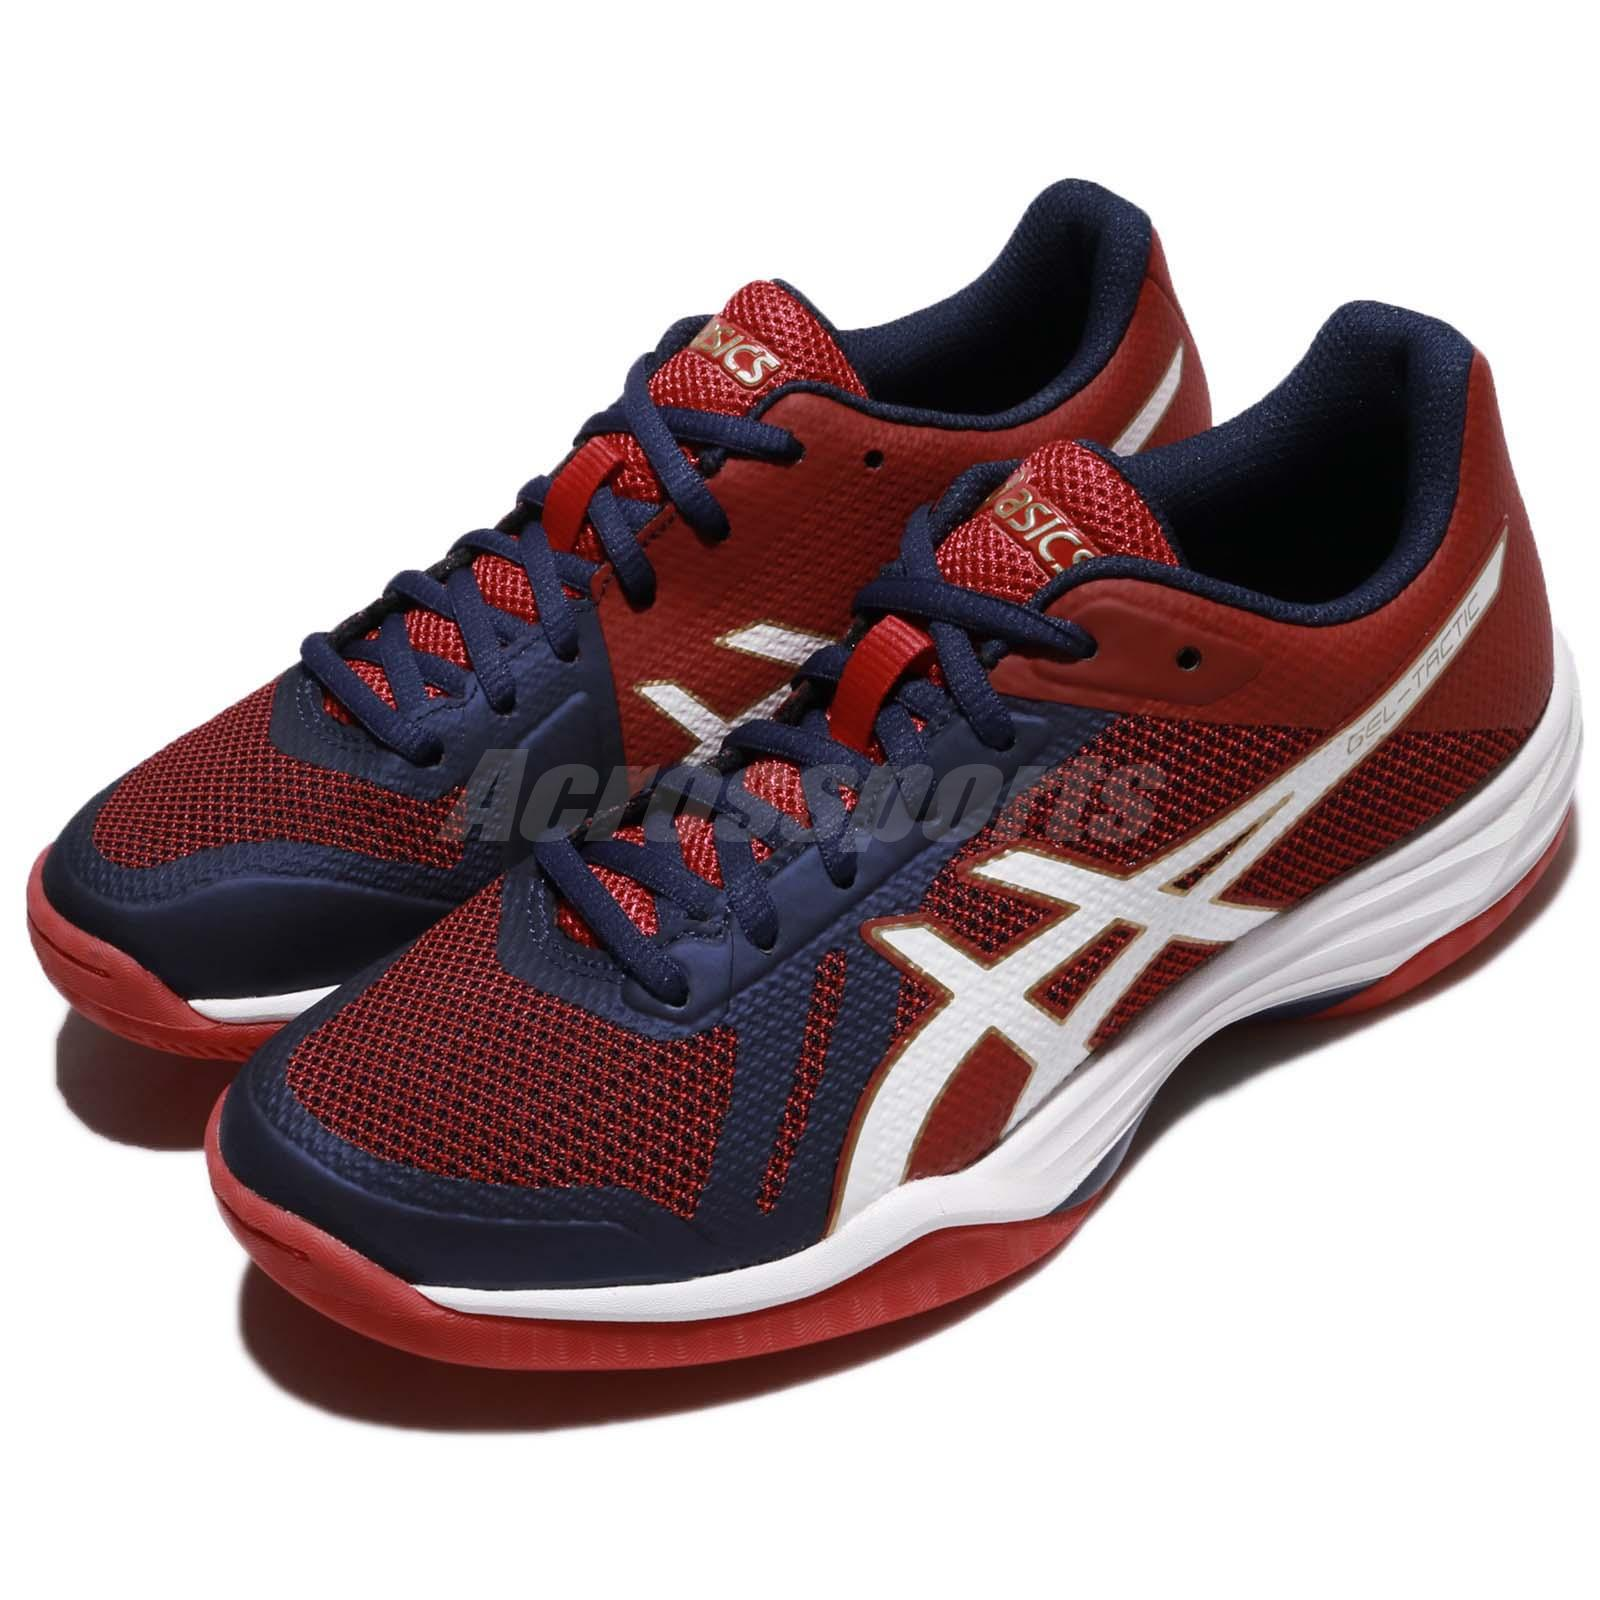 Asics Gel Tactic Prime Red Blue Women Volleyball Badminton Shoes B752N 4901